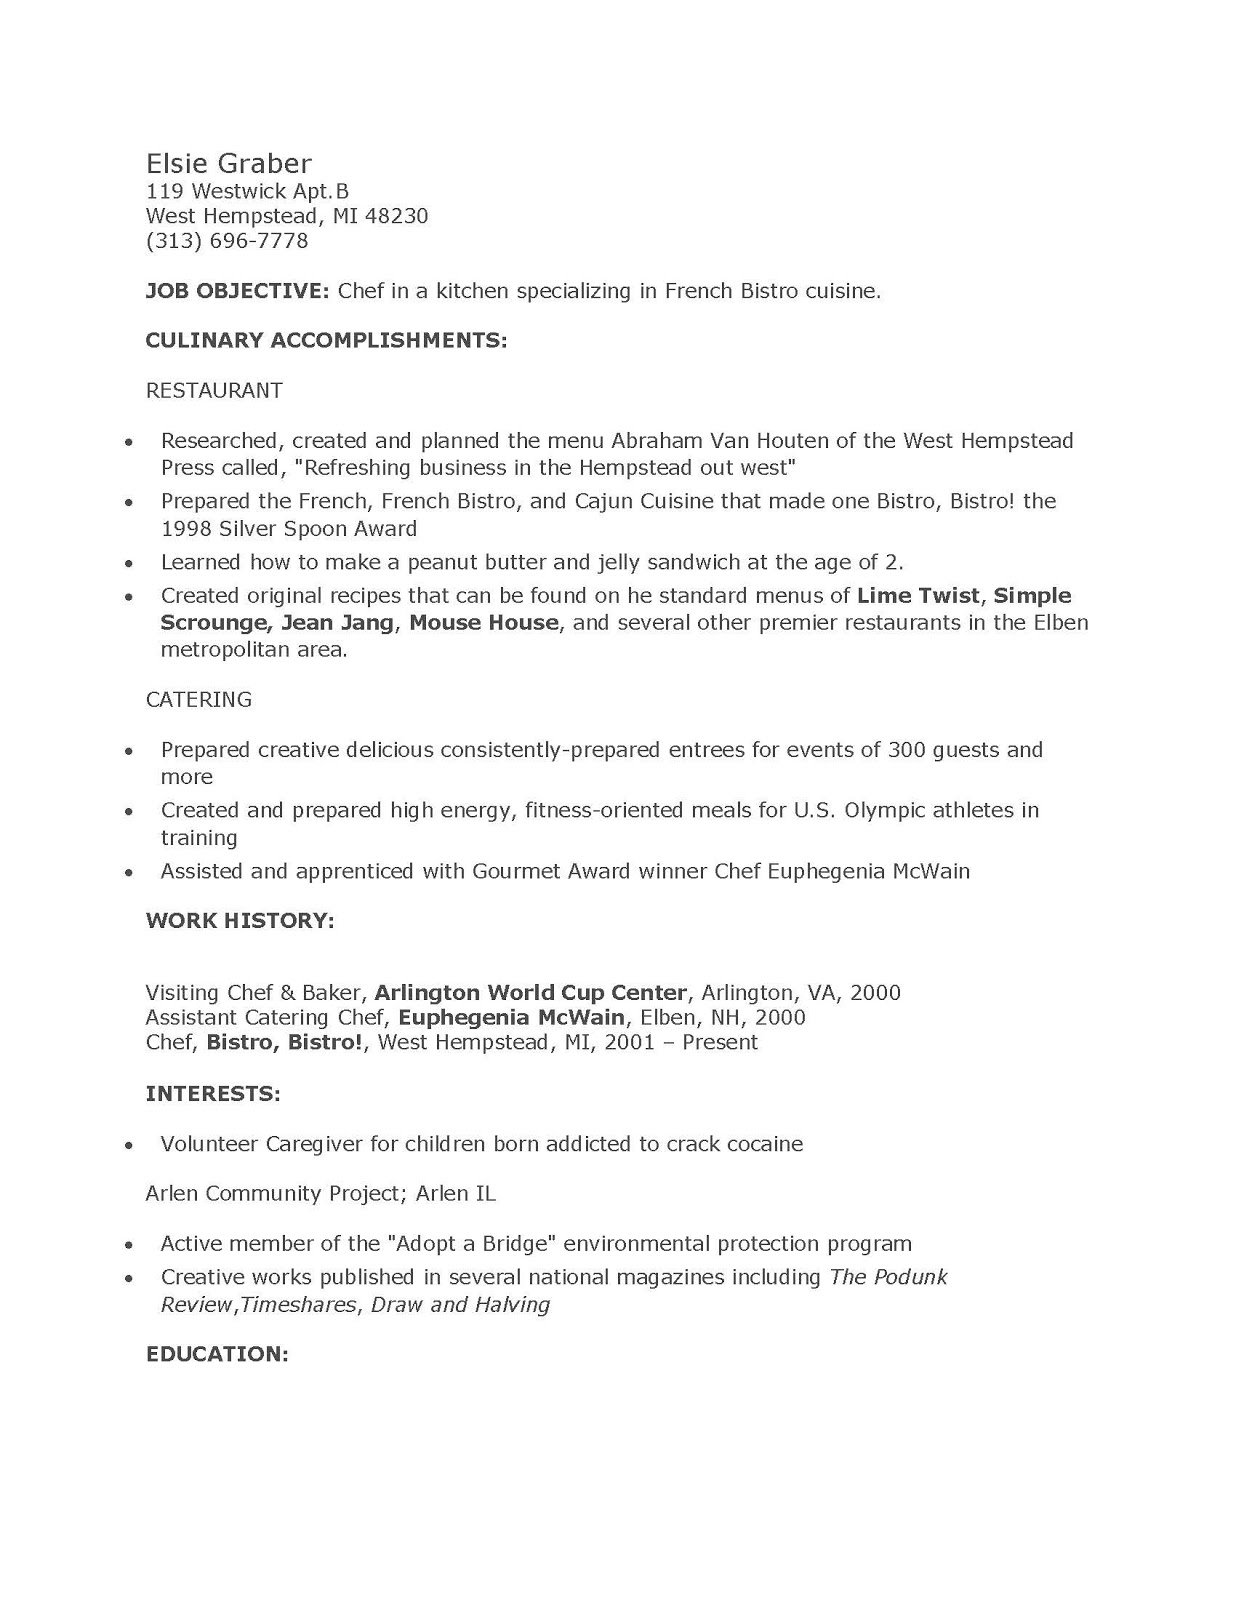 Resume Examples Easy Way To Make A Resume Cover Letter Sample Ucsd     Resume Template   Essay Sample Free Essay Sample Free Resume Examples Making The Best Resume Build A Resume Cna Case Study  Banking